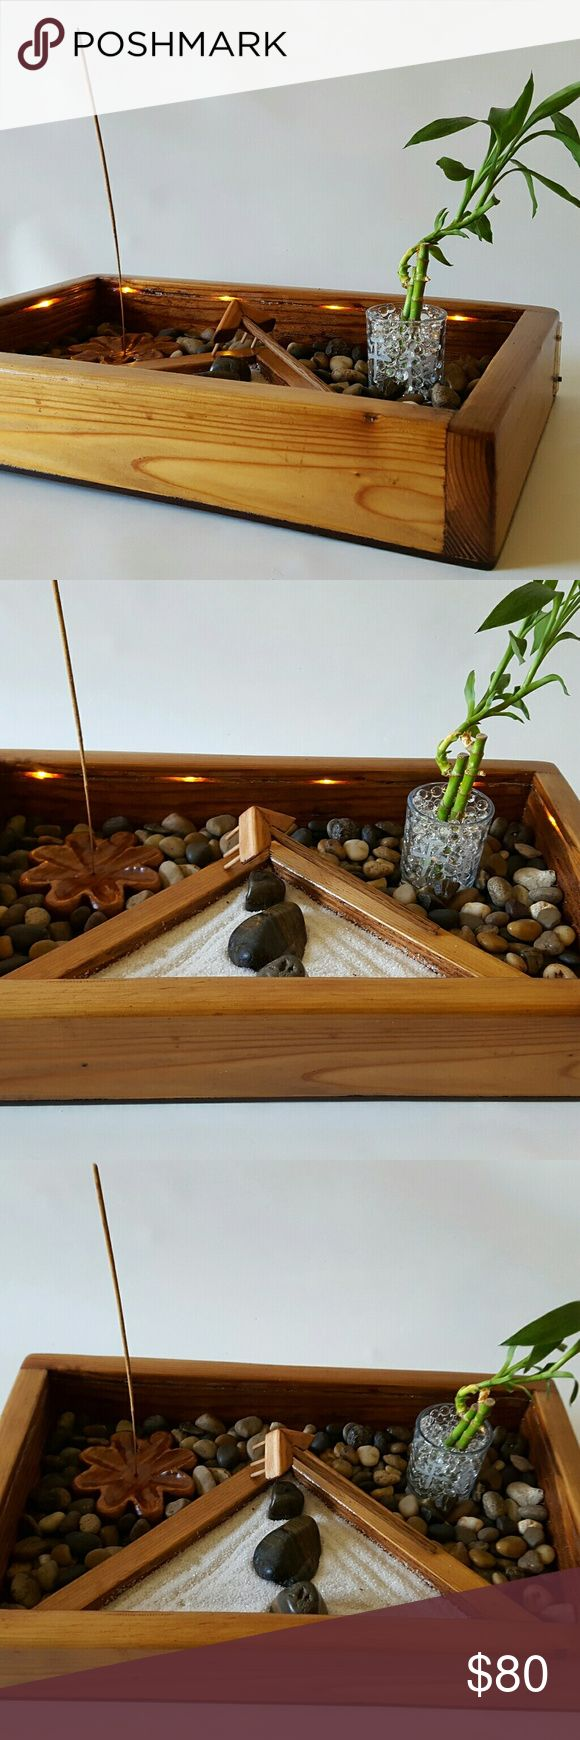 What do the colors of ribbon symbolize on lucky bamboo ehow - Light Up Zen Garden This Handcrafted Meditation Garden Includes 1 Cedar Wood Base 2 Lucky Bamboo Stalks Incense Holder Unique Handcrafted Cedar And Oak